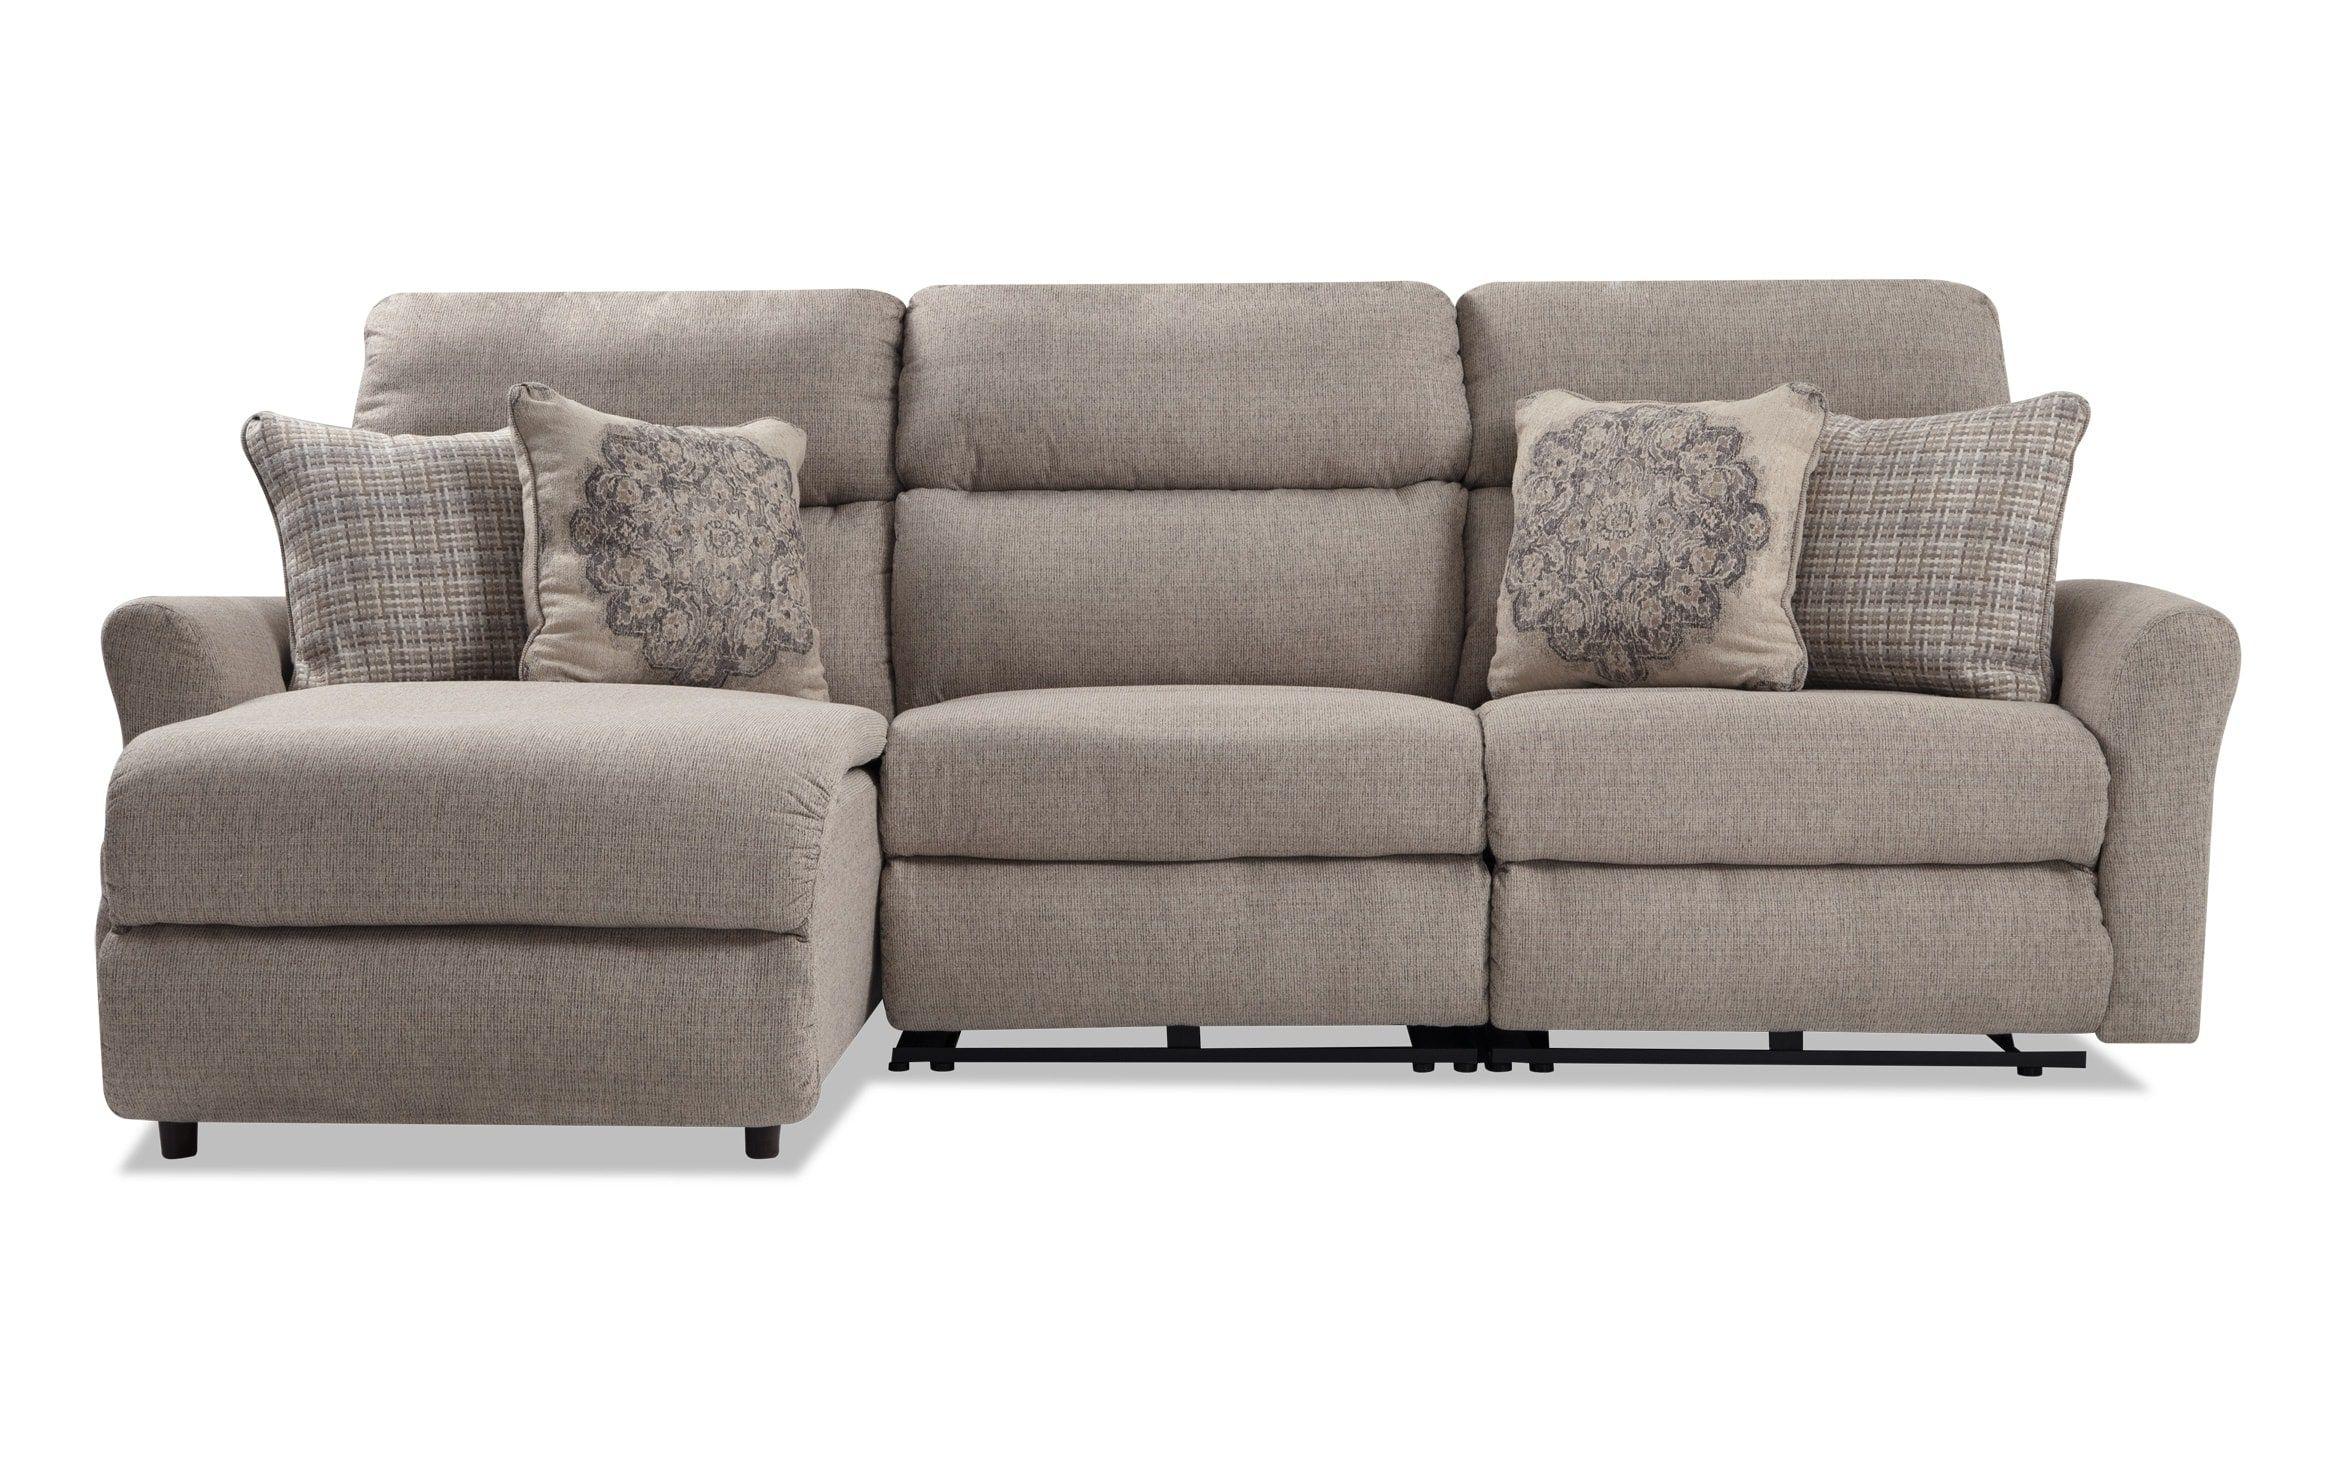 Charleston 3 Piece Right Arm Facing Power Reclining Intended For Charleston Power Reclining Sofas (View 8 of 15)